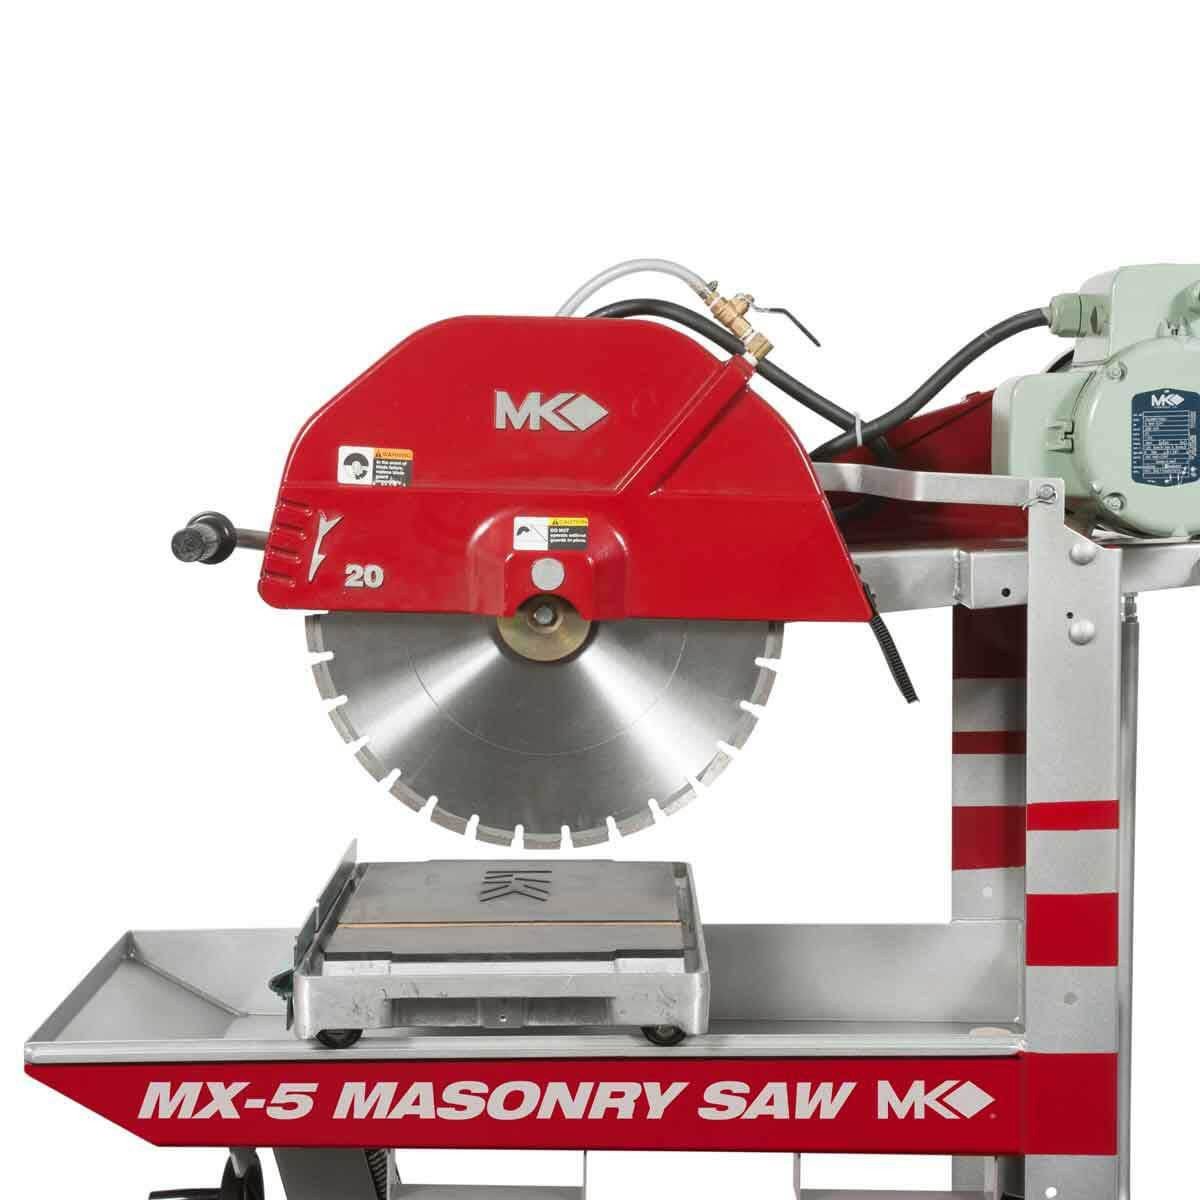 mk diamond mx-5 230v masonry saw with 20in blade guard